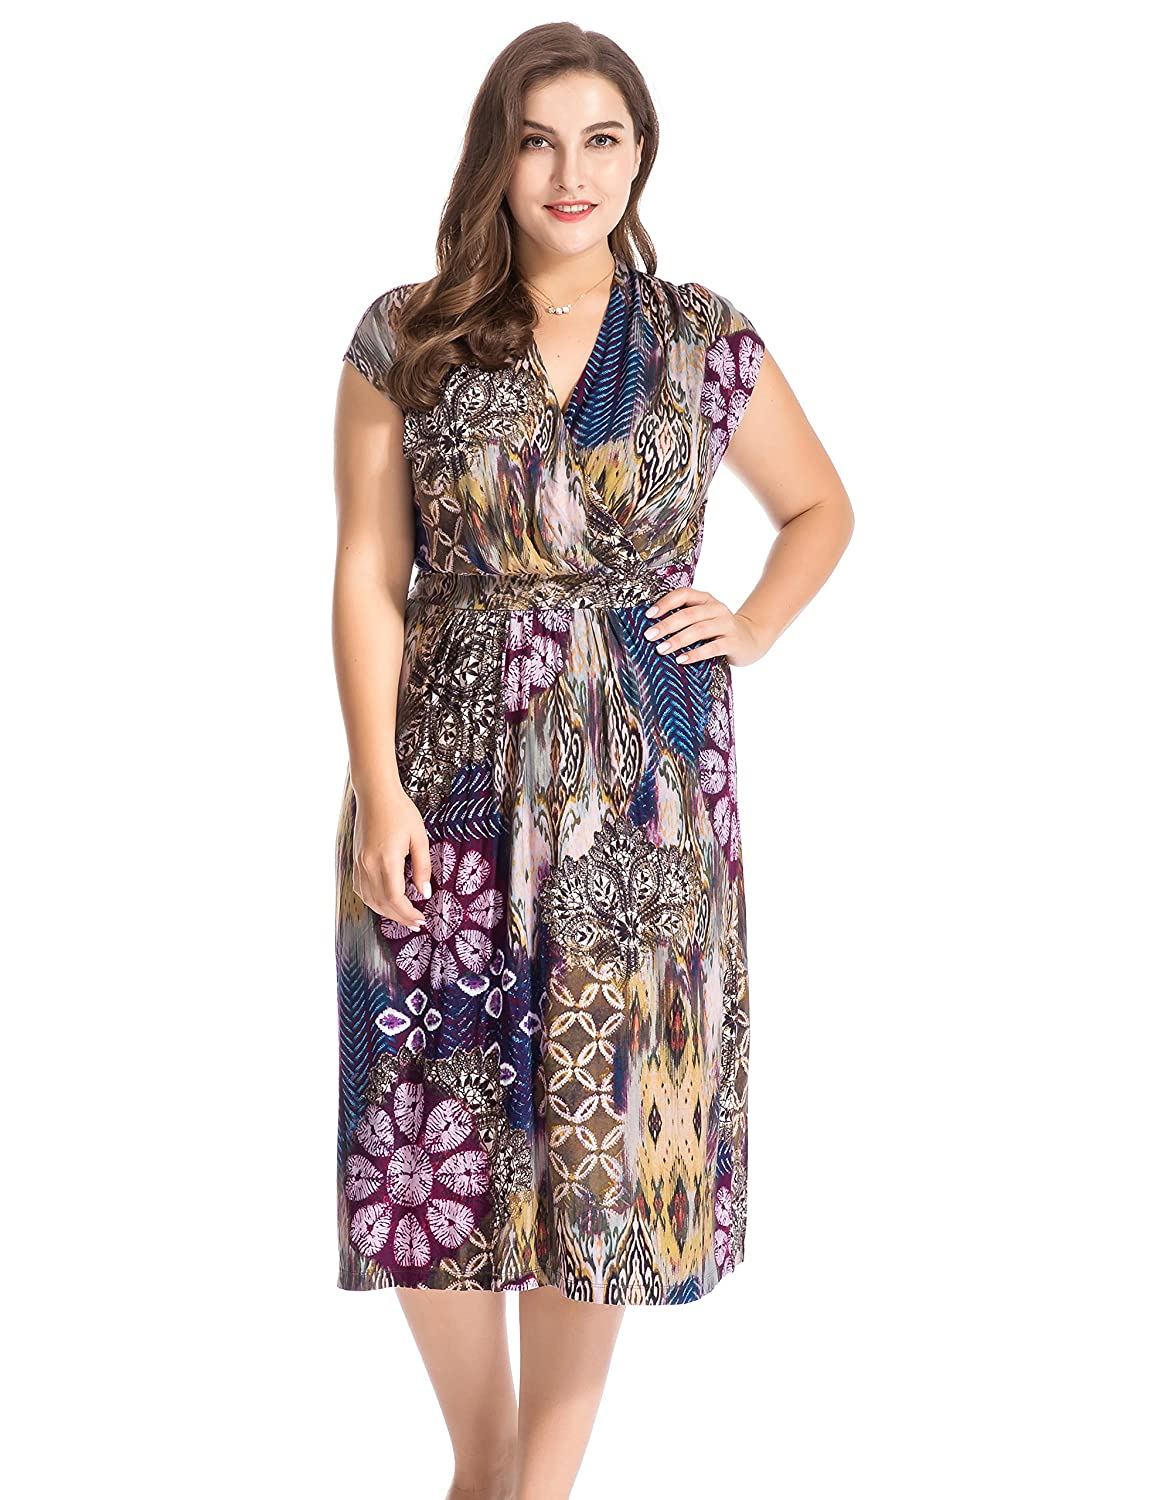 Chicwe Women's Cap Sleeves Plus Size Floral Dress with Belt US14-28 C16C066